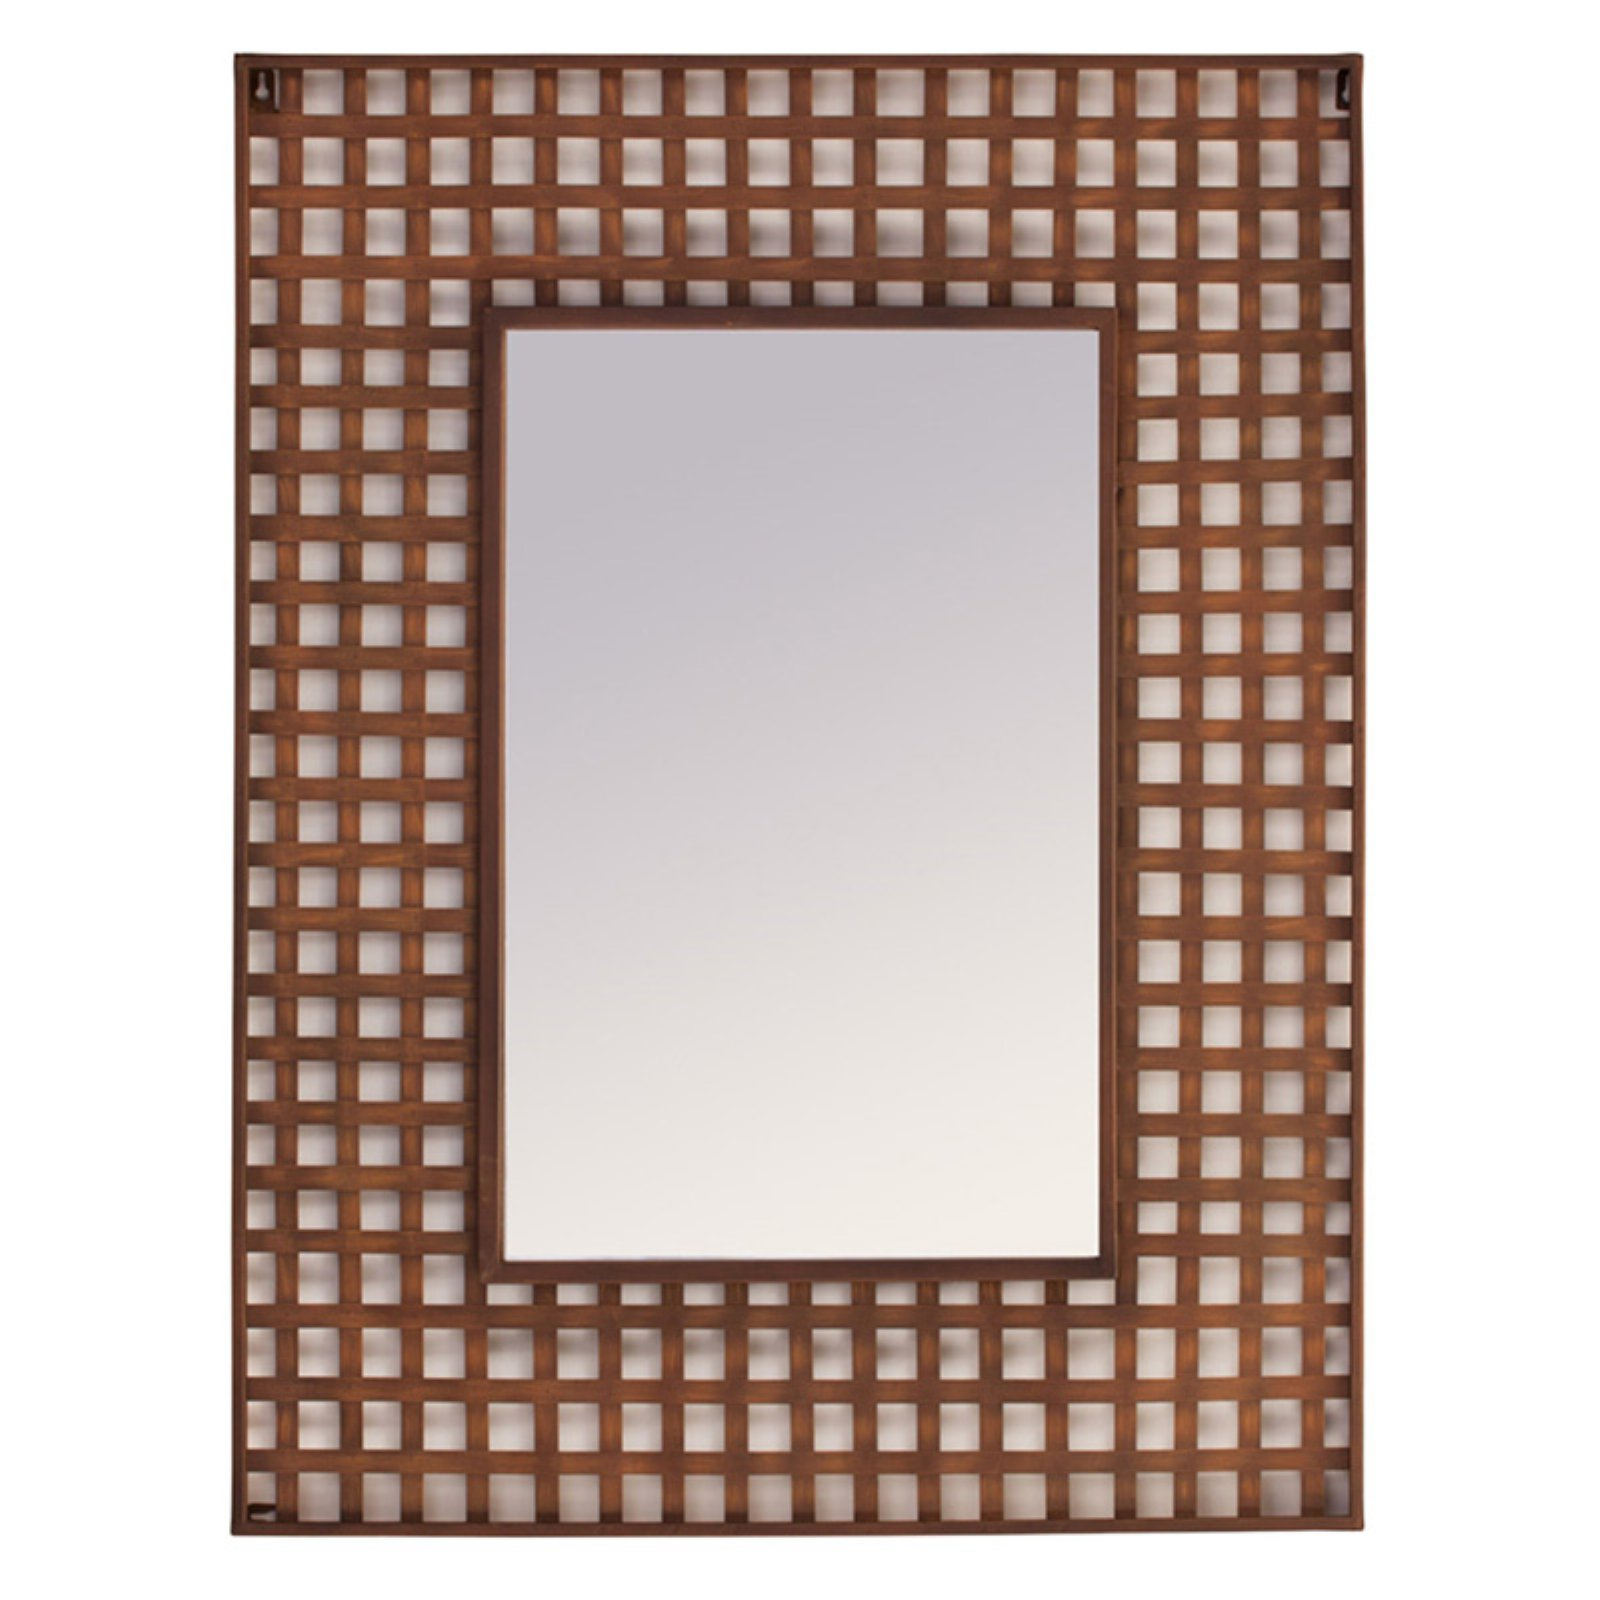 Melrose International Industrial Gingham Wall Mirror